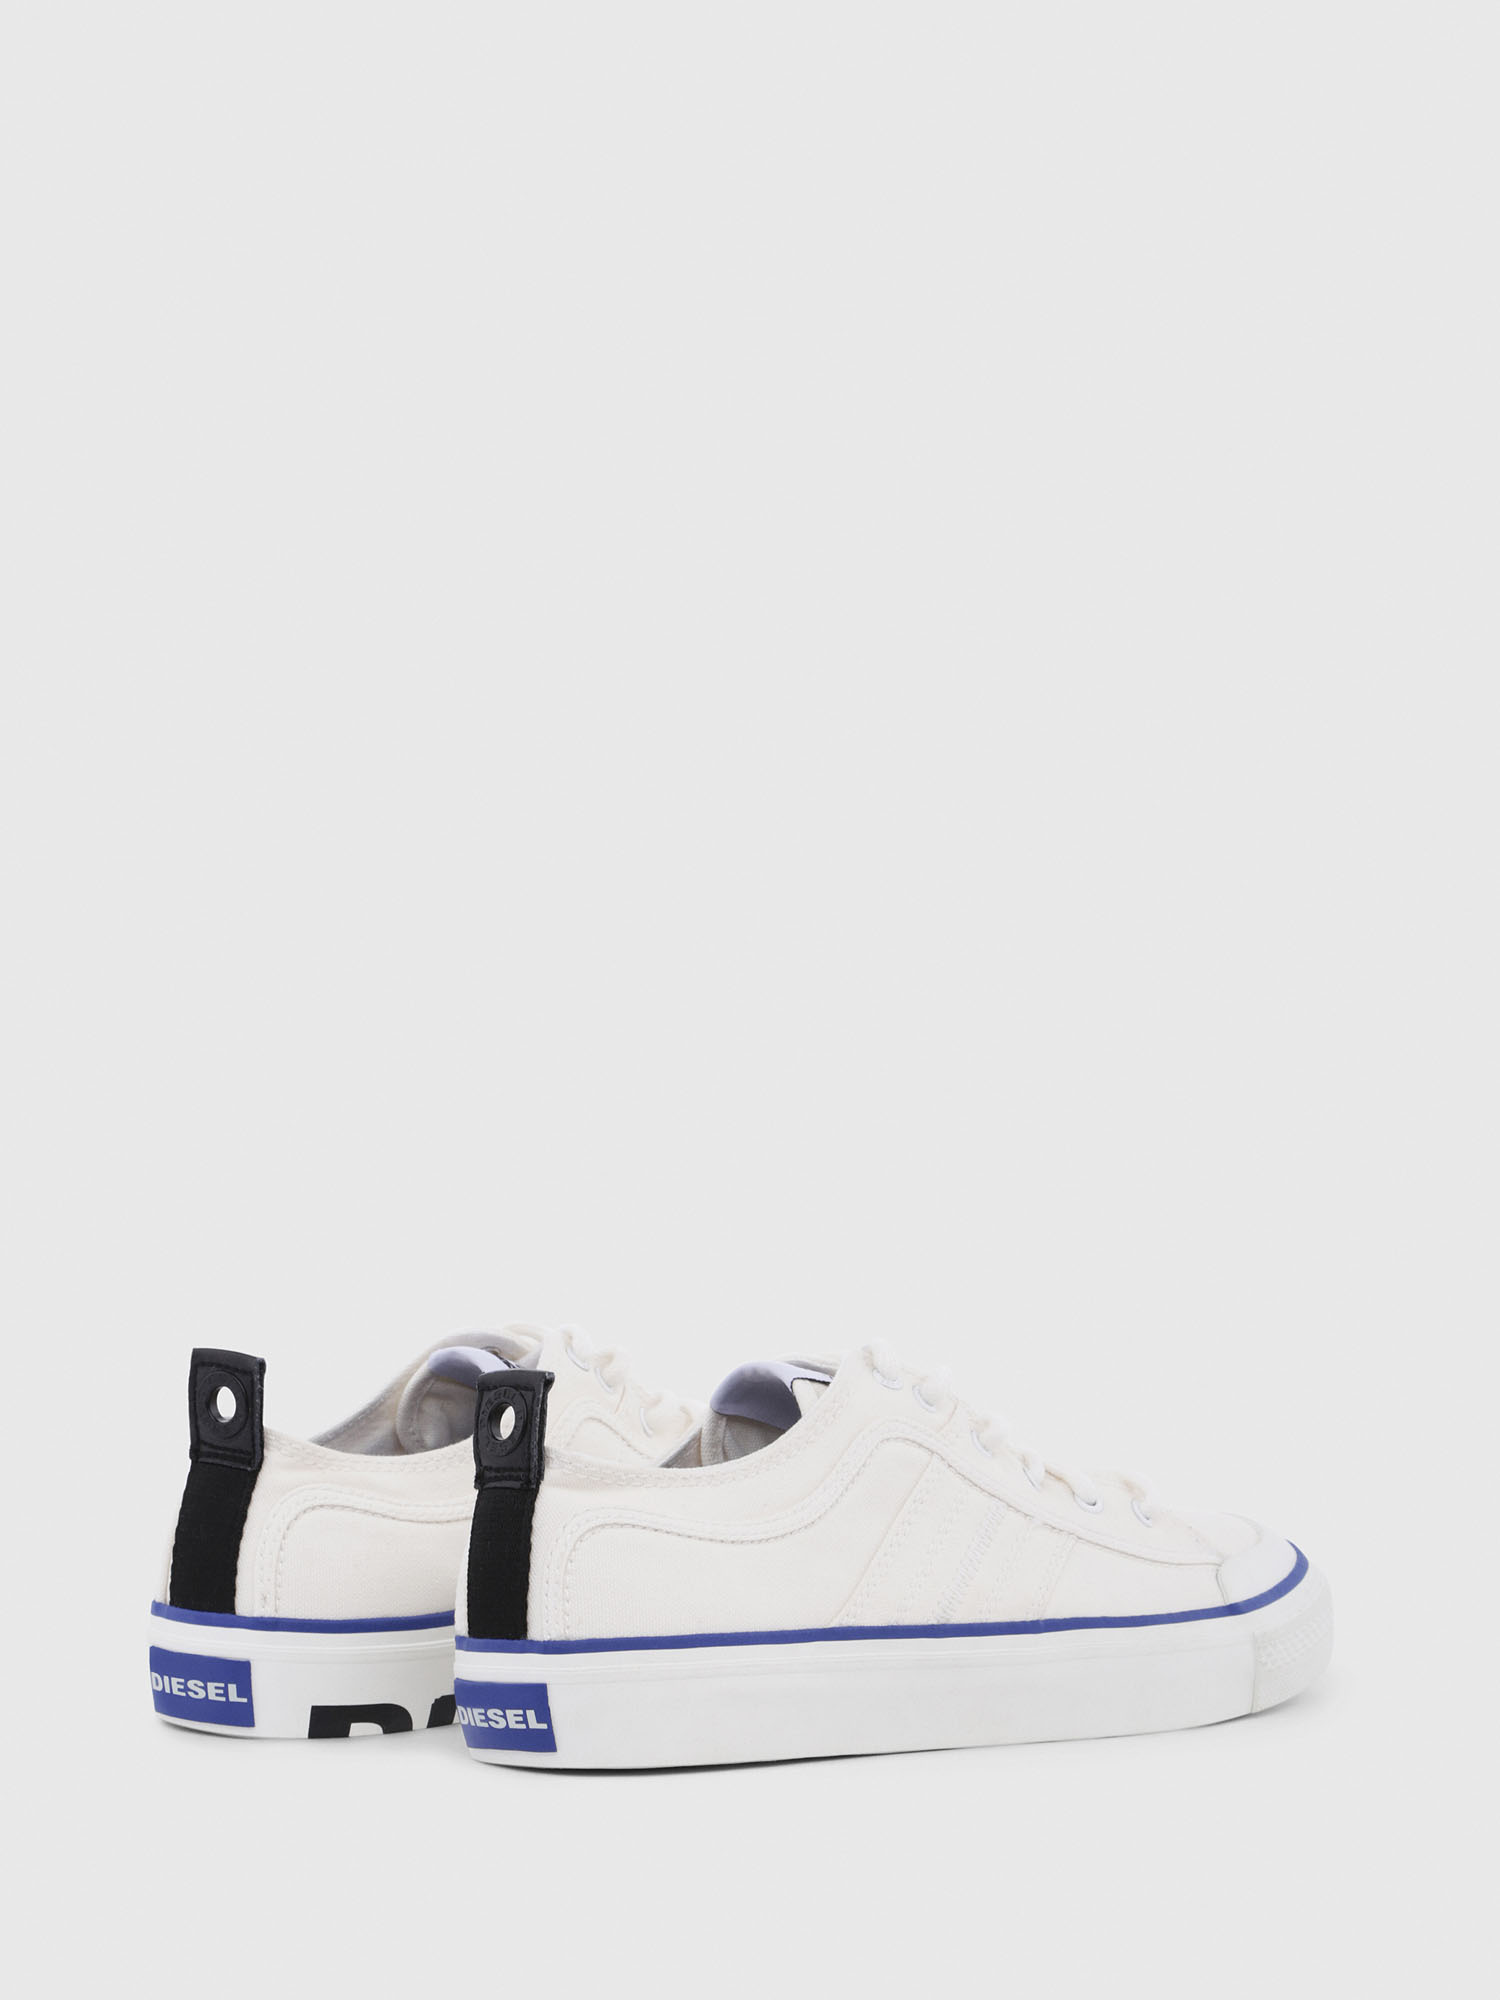 Diesel - S-ASTICO LC LOGO,  - Sneakers - Image 3